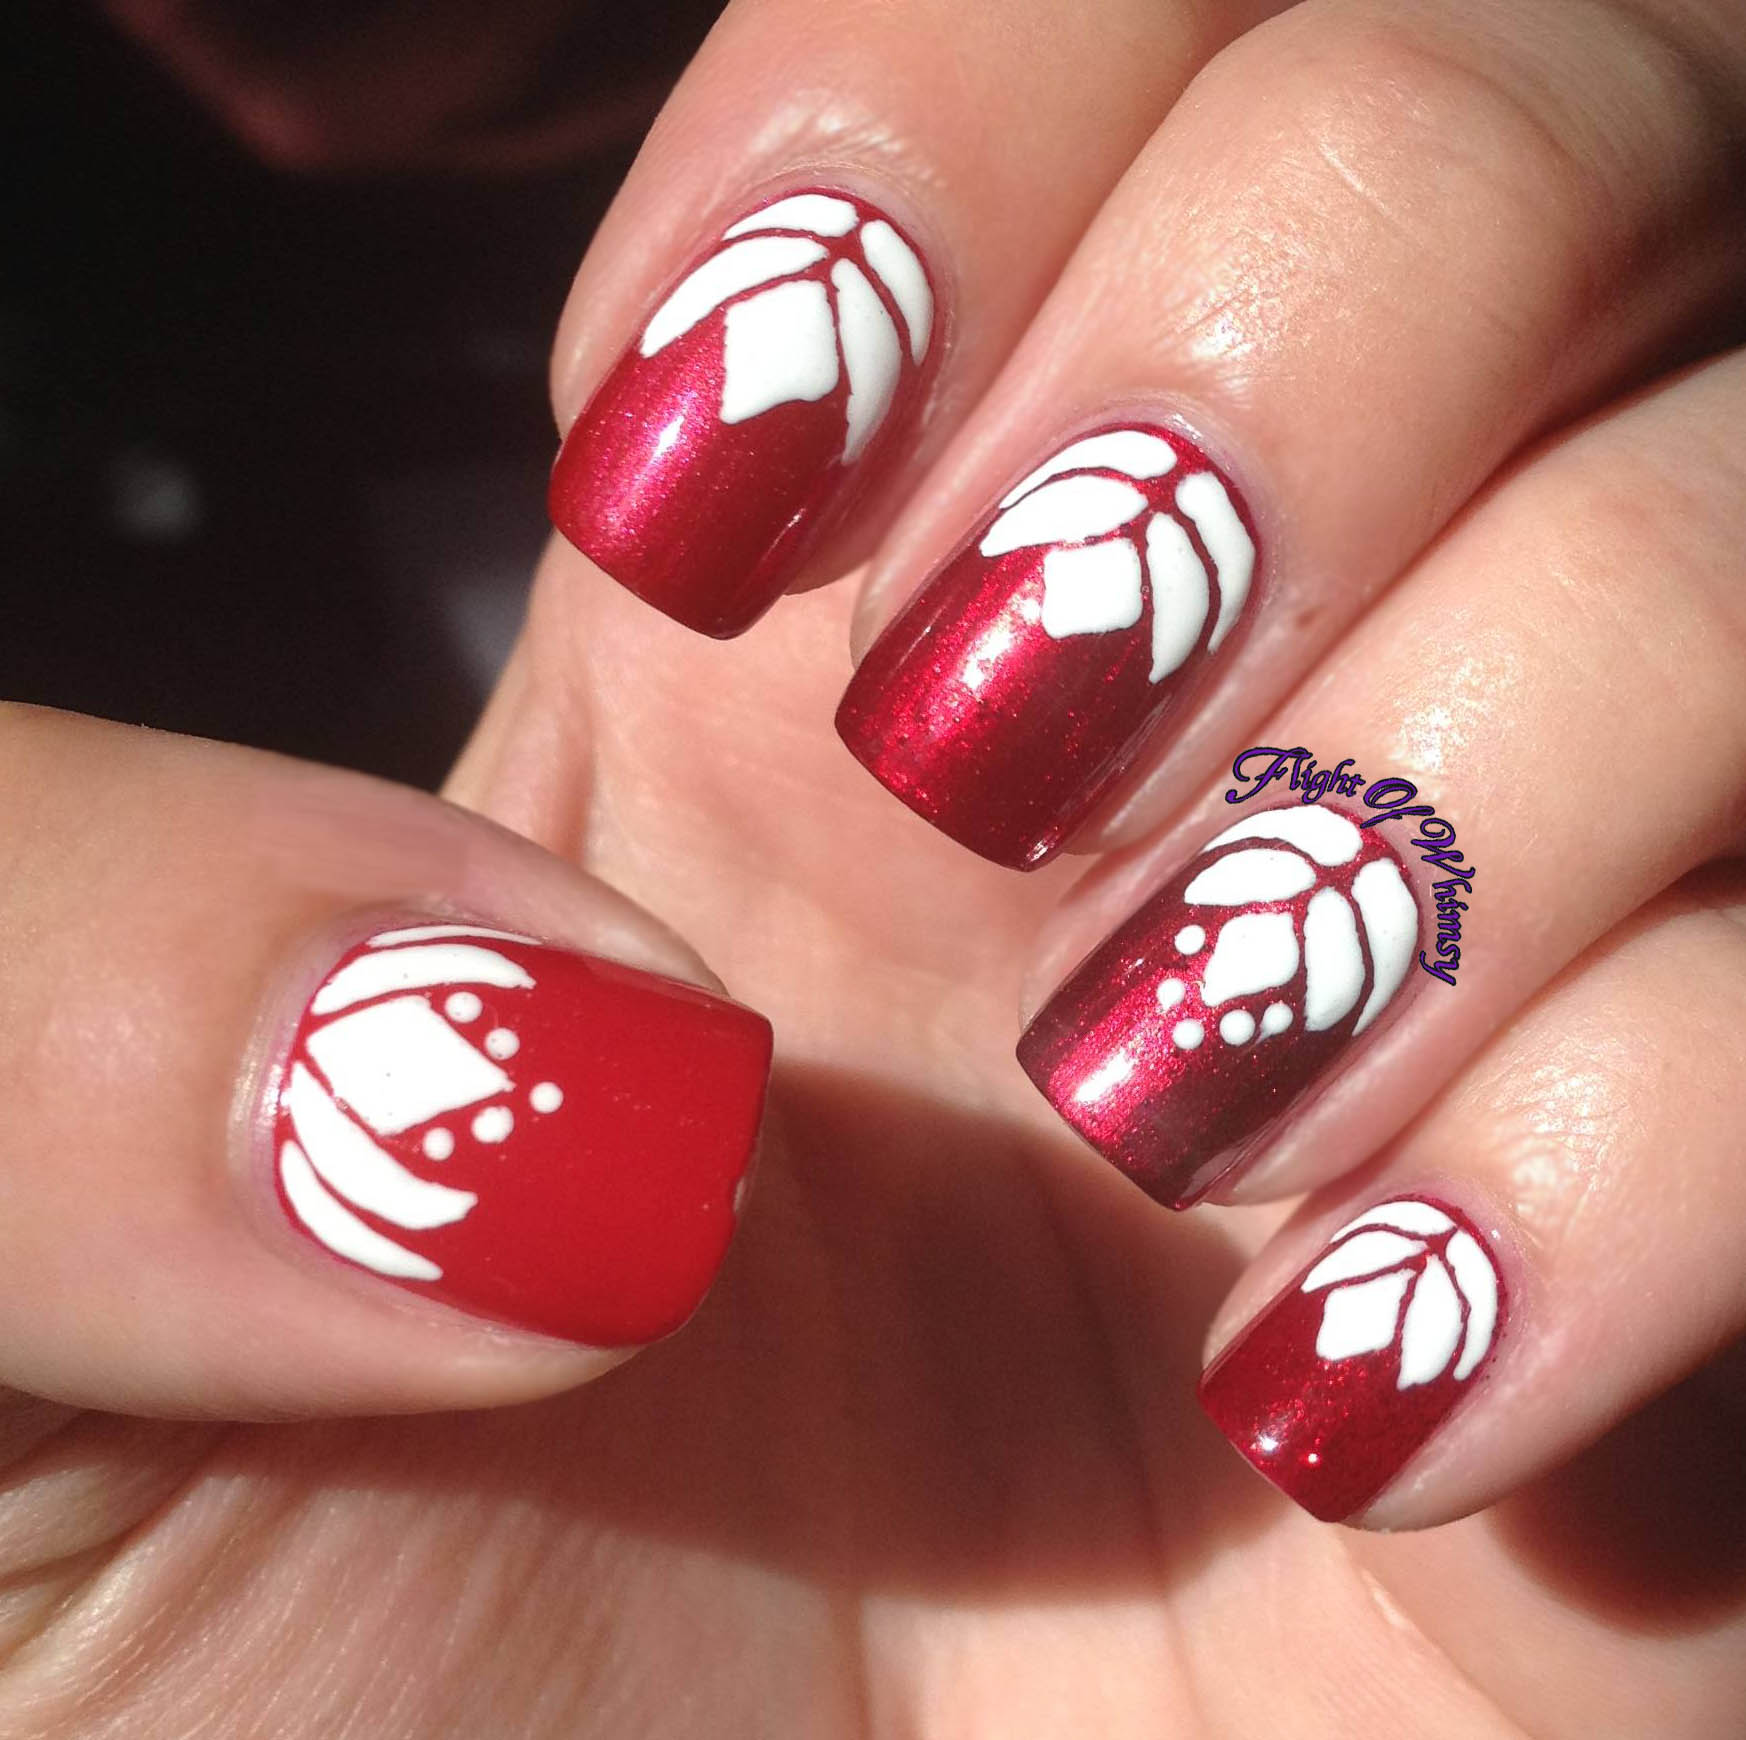 Day 14 flowers lotus flight of whimsy hope you enjoyed and dont forget to check out the other girls nails dhlflorist Image collections